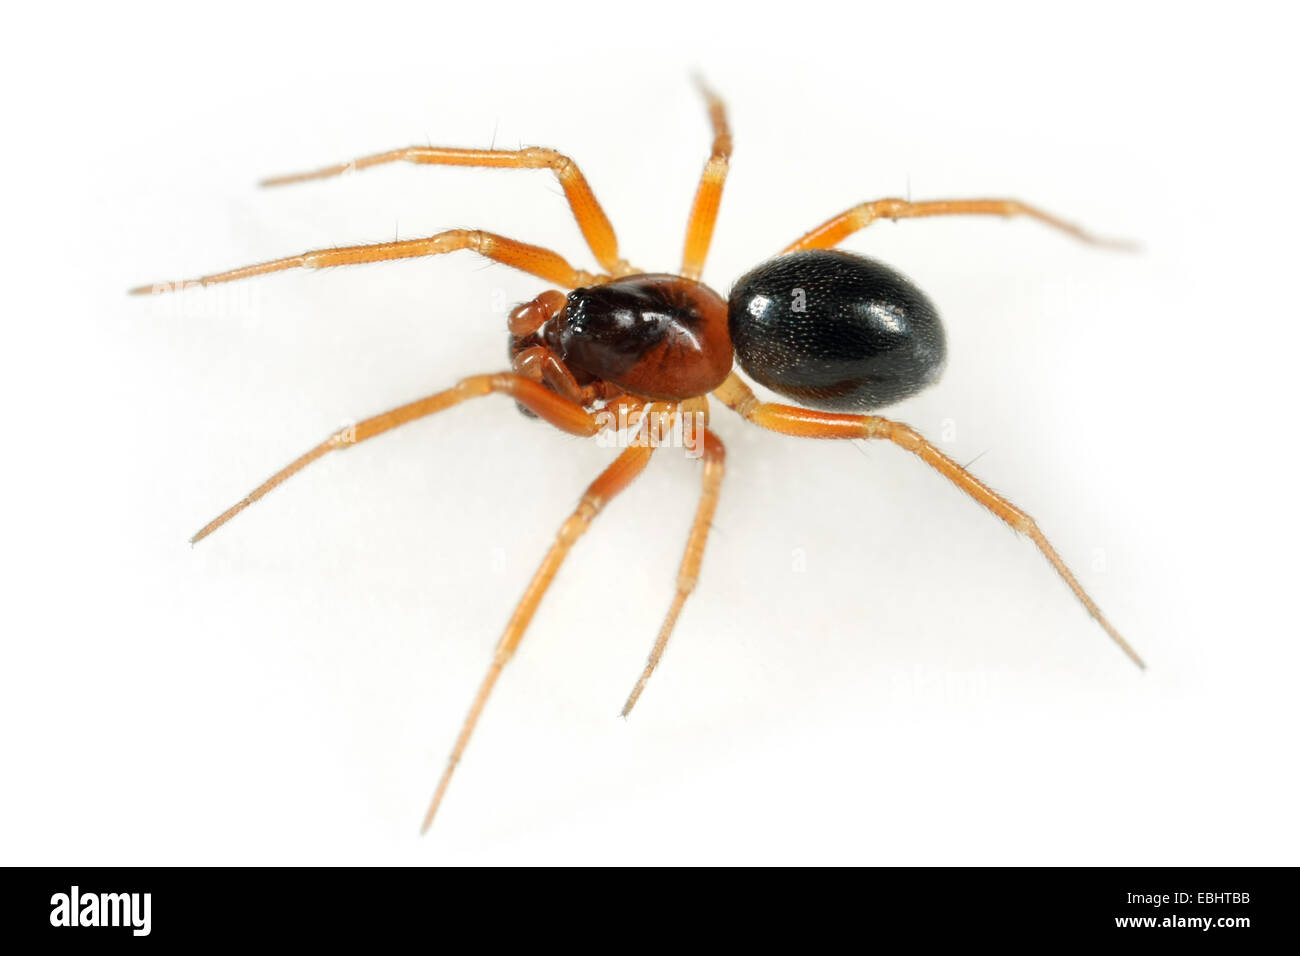 A Male Dwarf spider (Gongylidium rufipes) on white background. Dwarf spiders are part of the family Linyphiidae. - Stock Image